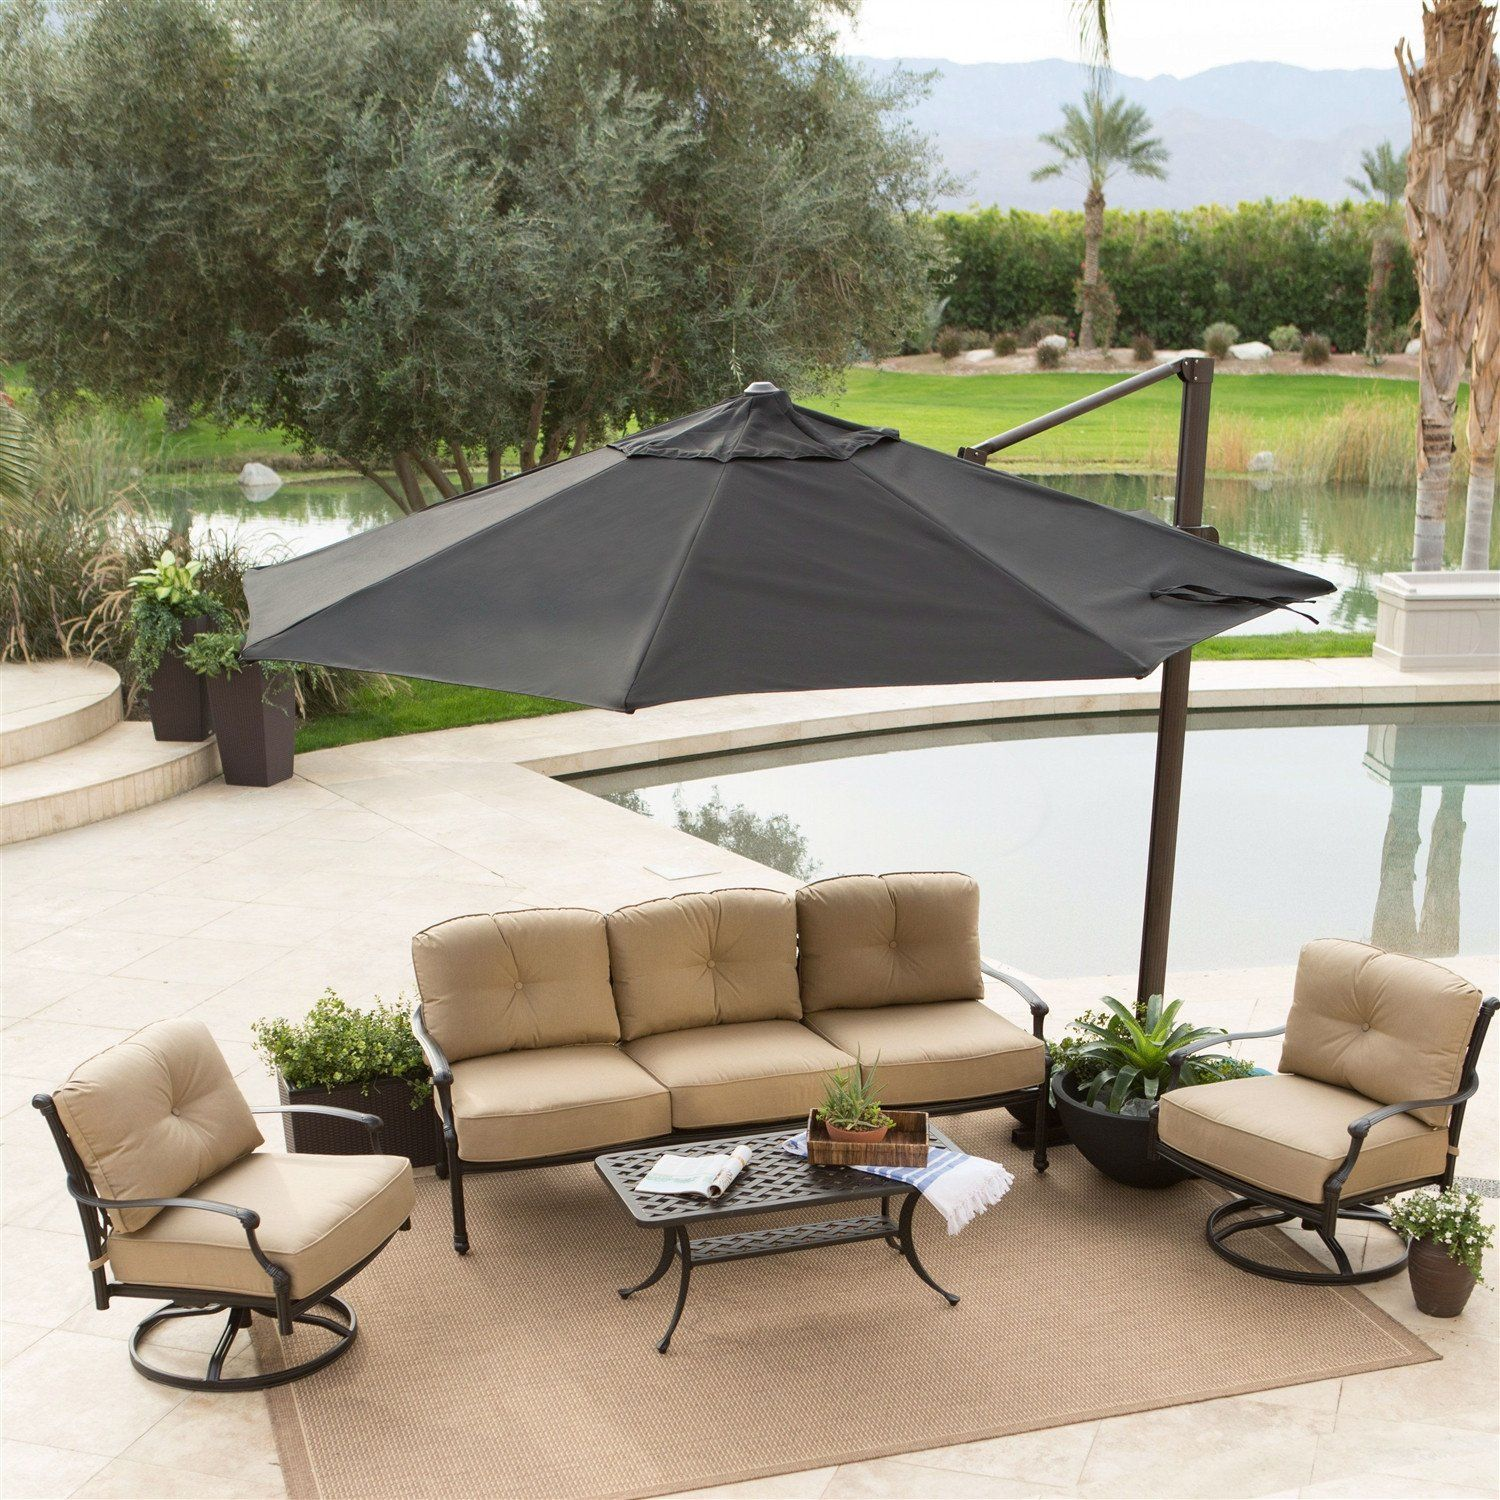 Black 11 FT fset Patio Umbrella With Crank Tilt & Aluminum Pole